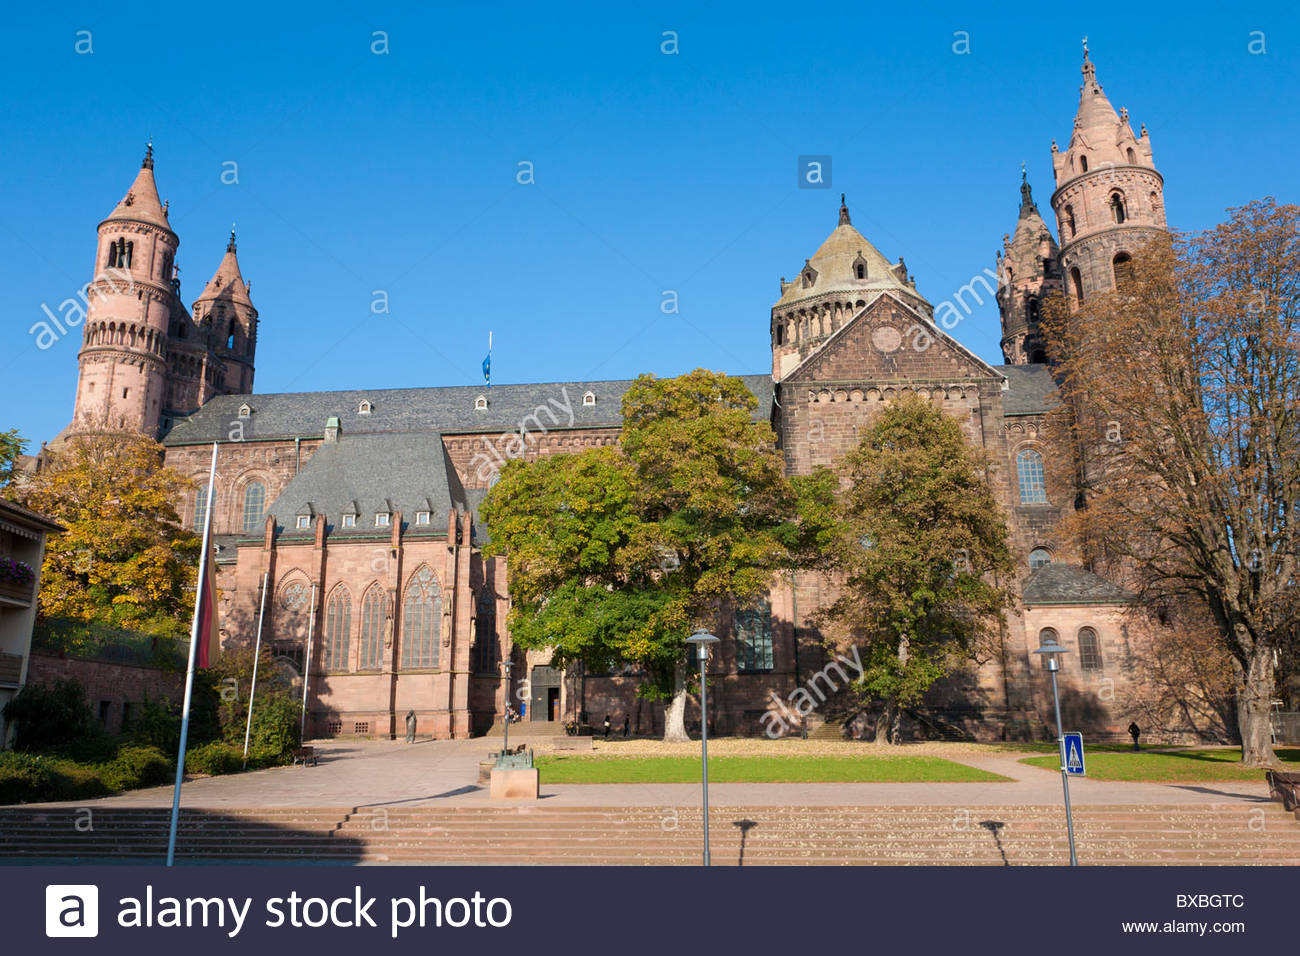 Wormser Dom St. Peter The Pfalz and Rhine Terrace, CATHEDRAL ST. PETER, KAISERDOM, DOM, WORMS, RHINELAND-PALATINATE ...